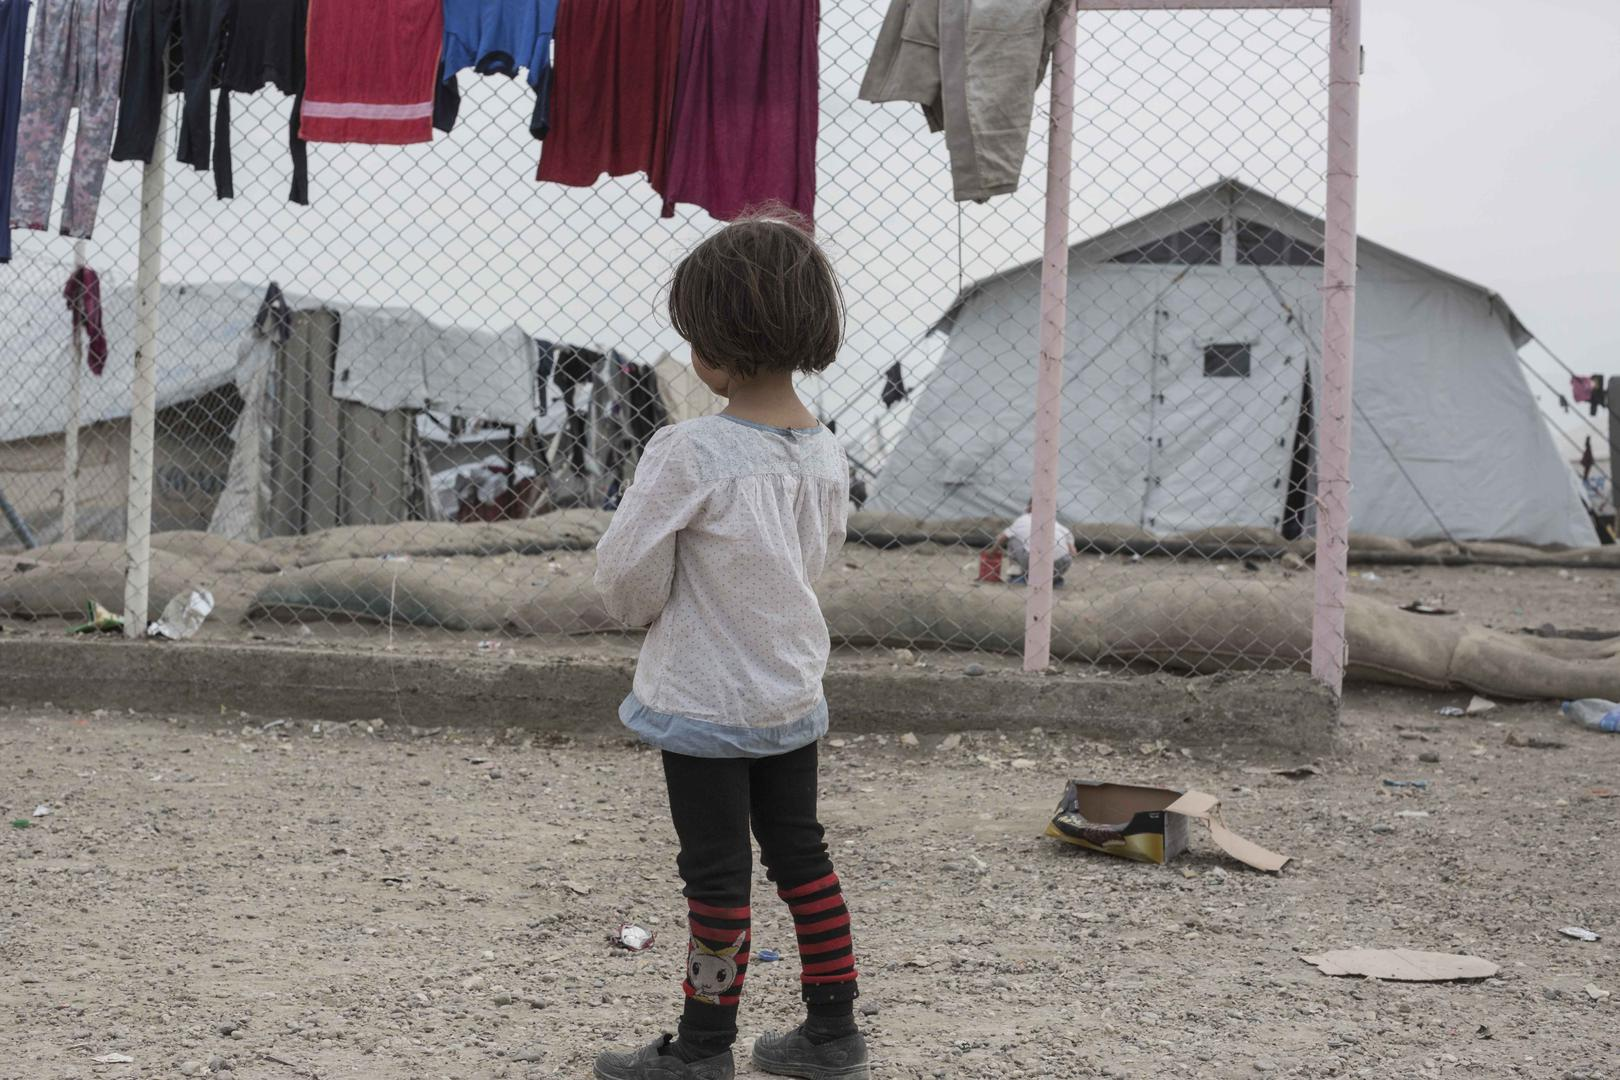 A girl stands in the annex of al-Hol camp in northeast Syria, where more than 11,000 women and children from nearly 50 nationalities are confined as family members of Islamic State (also known as ISIS) suspects. The Kurdish-led coalition controlling north